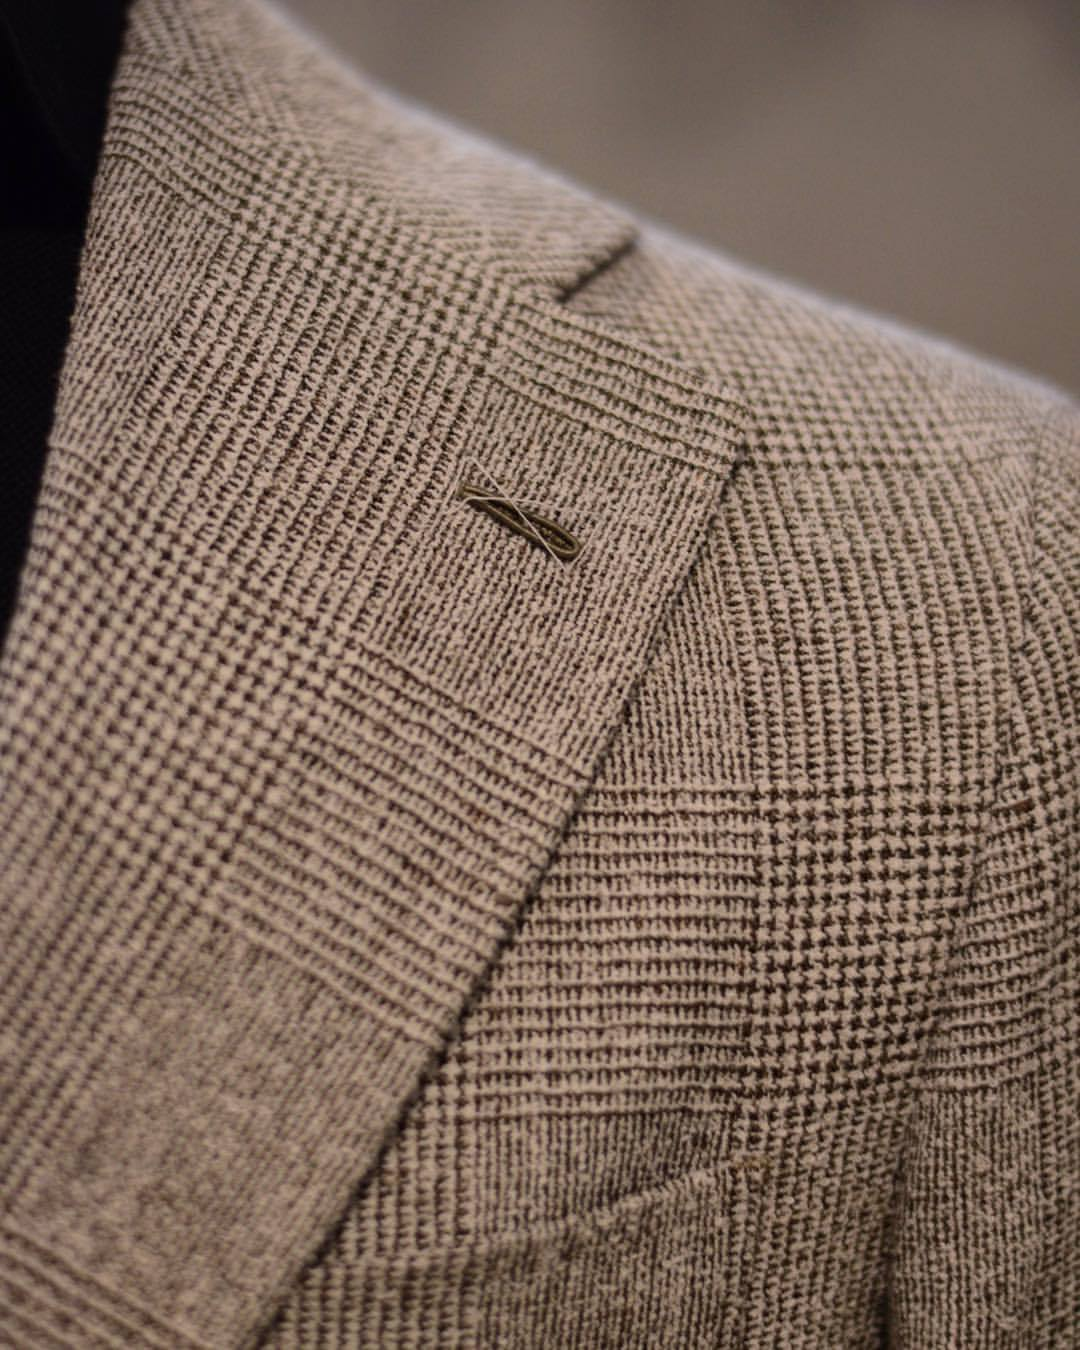 Milanese Buttonhole : milanese, buttonhole, Quote, Up-close, Handmade, Milanese, Buttonhole...